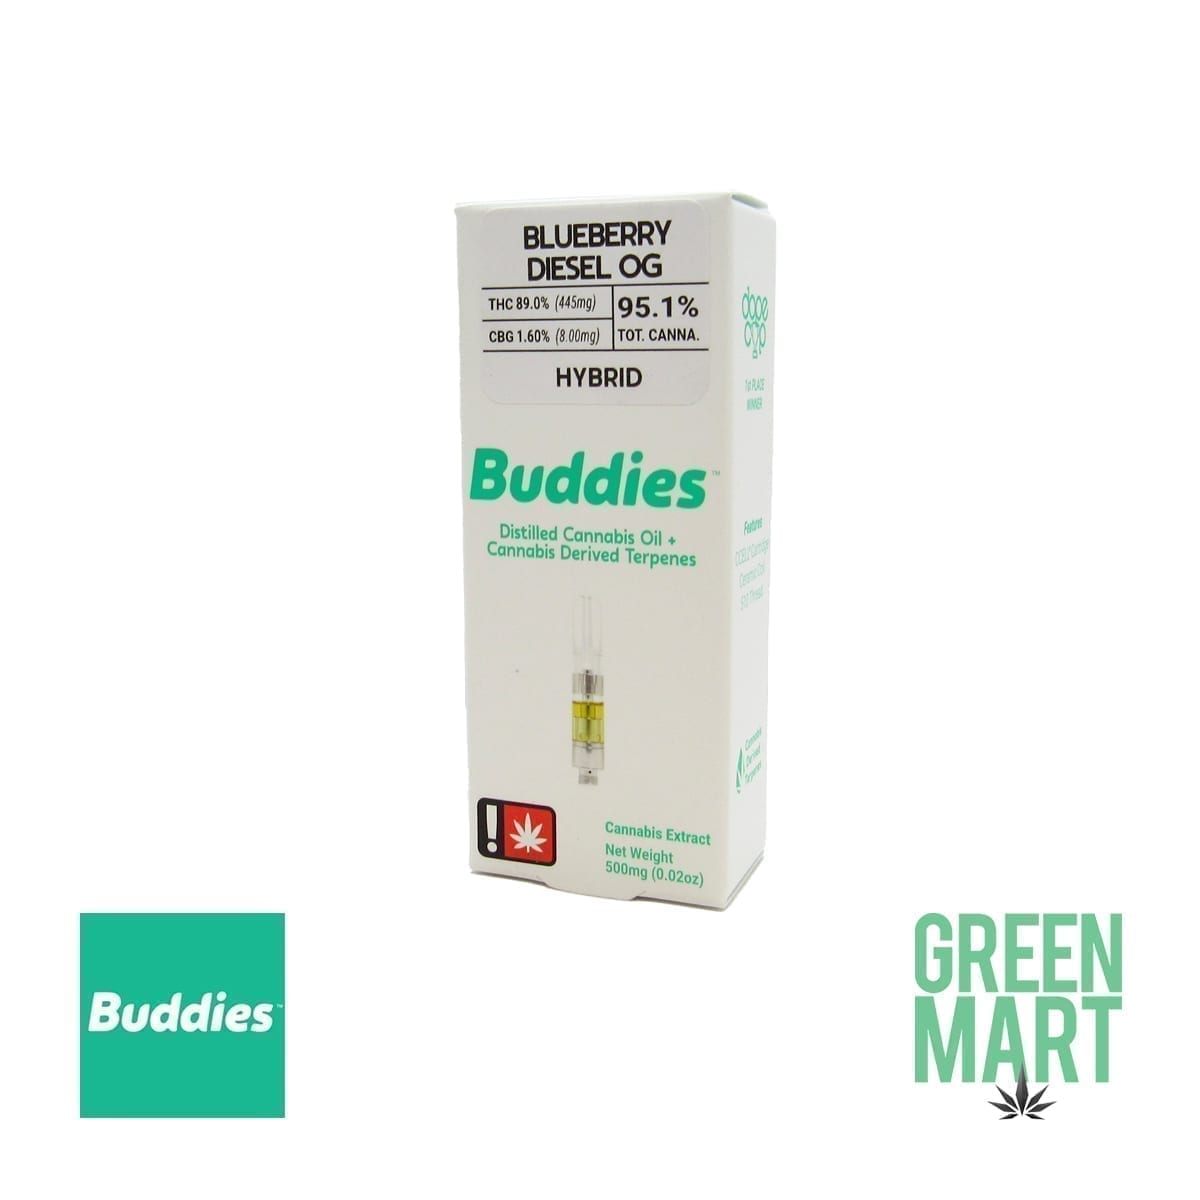 Buddies Brand Distillate Cartridge - Blueberry Diesel OG